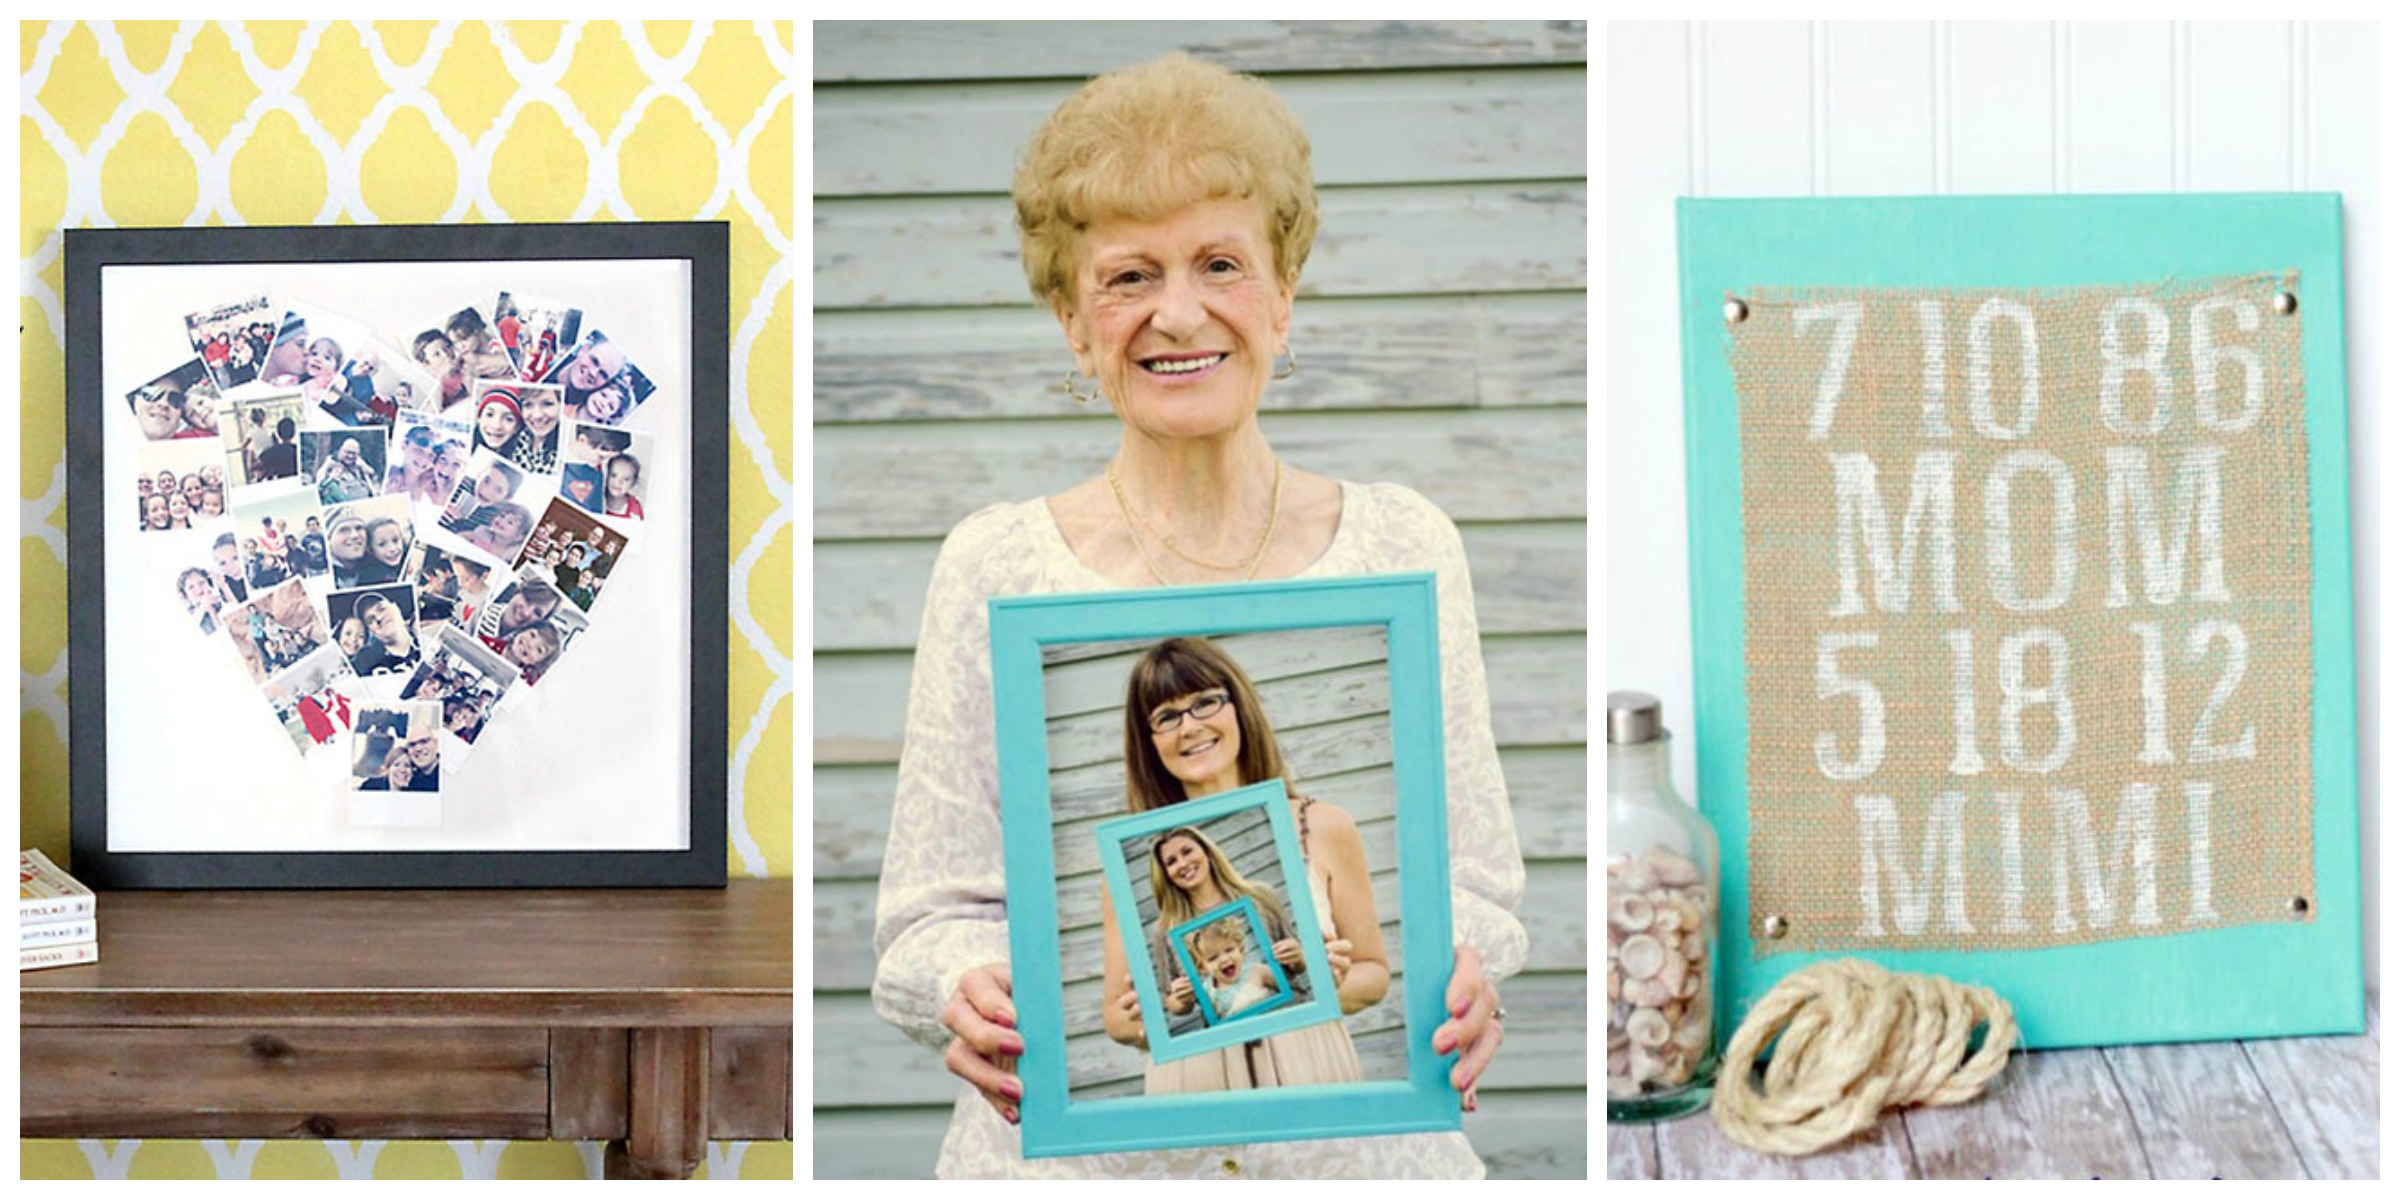 grandmother picture college ideas - 15 Best Mother s Day Gifts for Grandma Crafts You Can